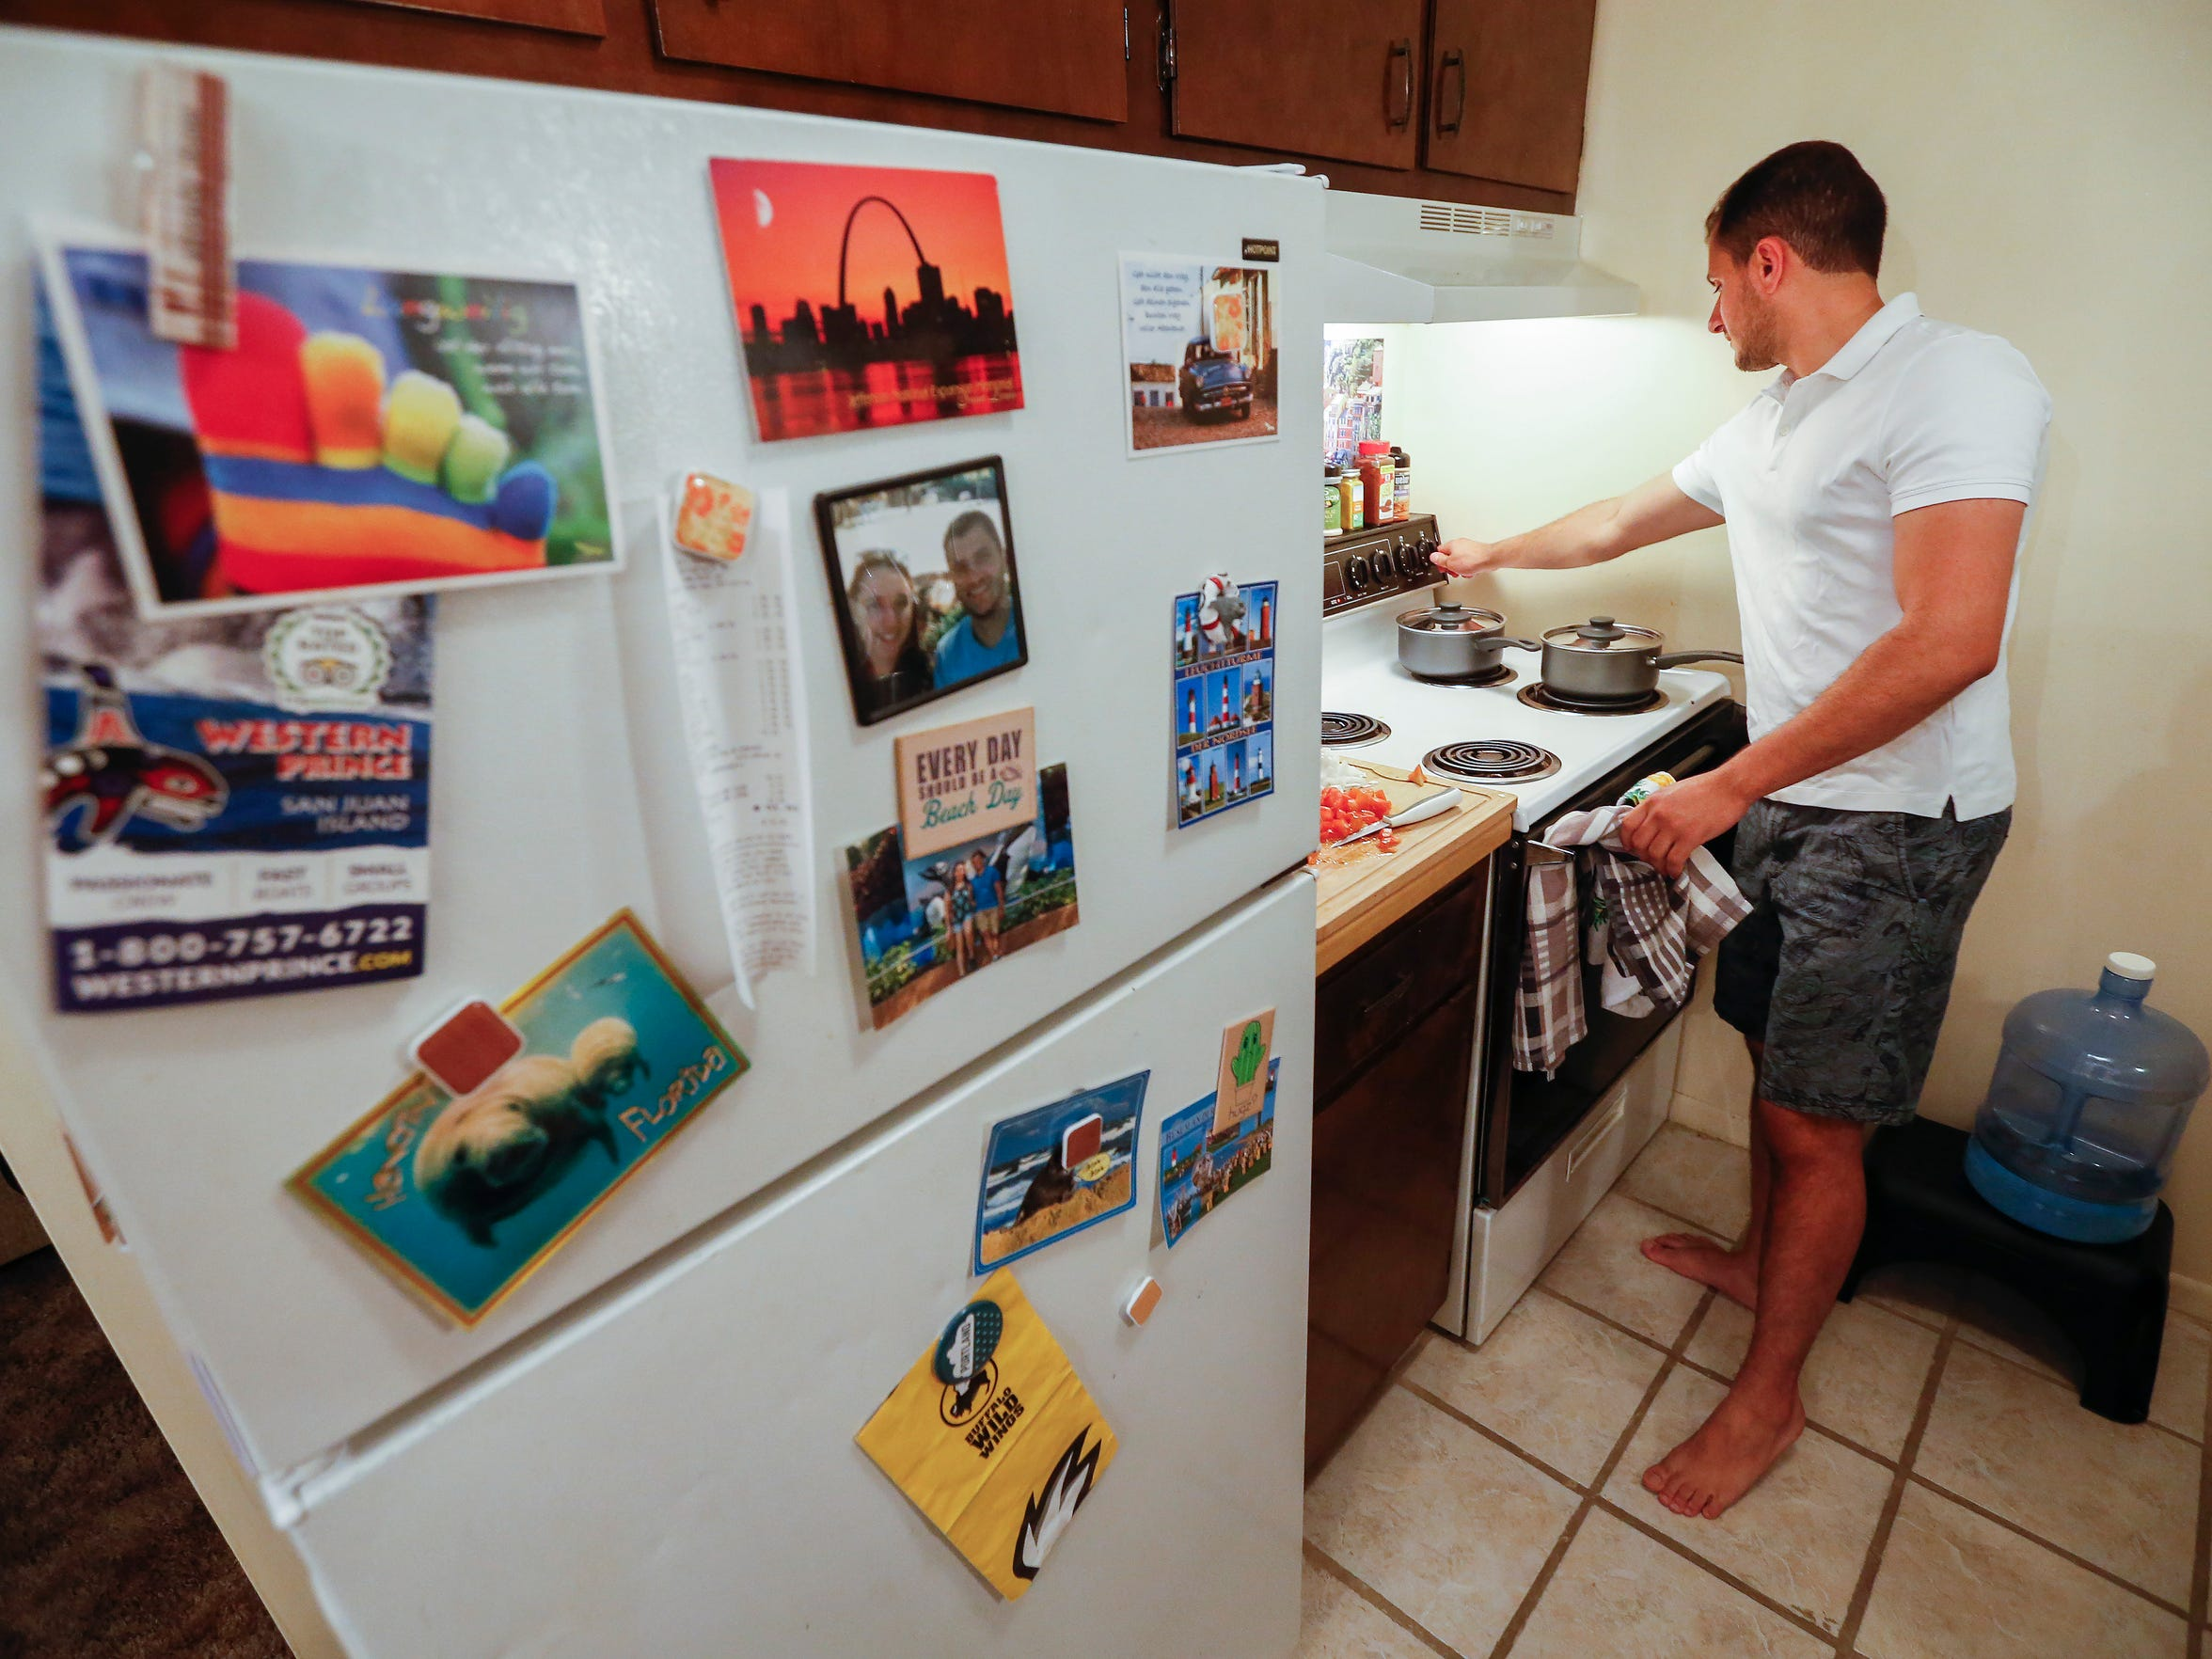 Mohammed Jubary cooks dinner in his apartment on Tuesday,